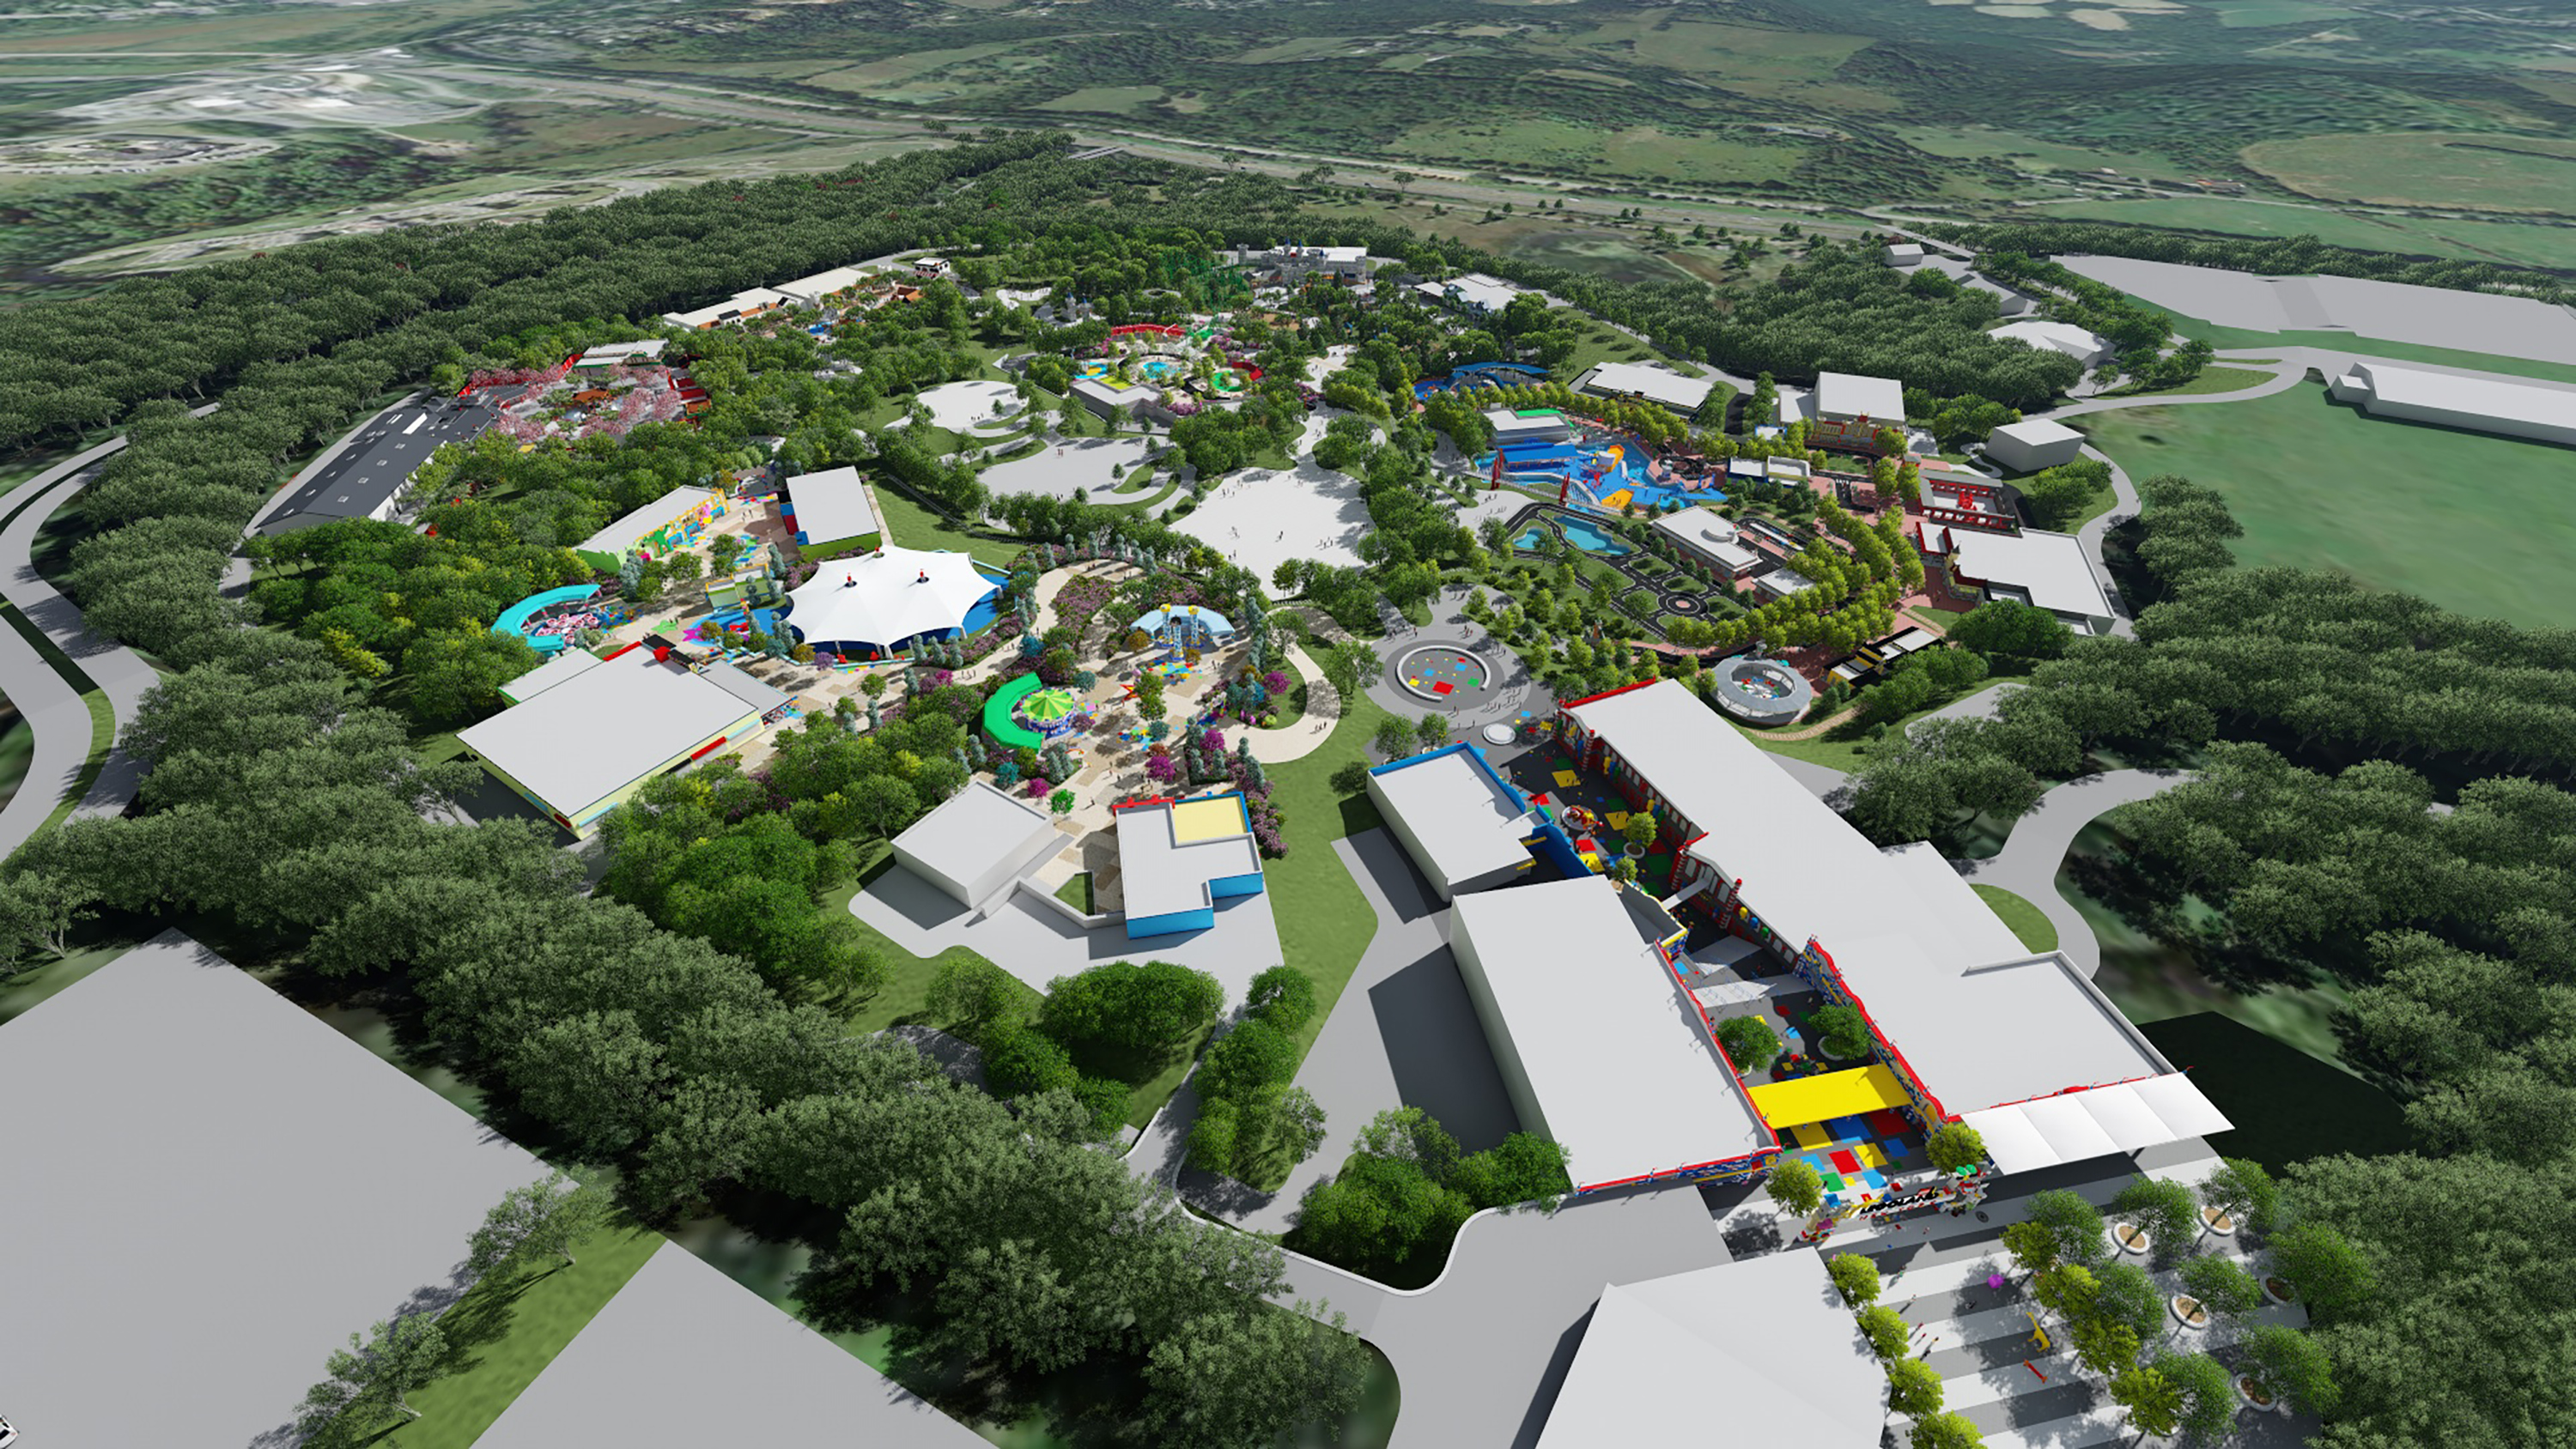 The World's Biggest Legoland Is Coming To New York